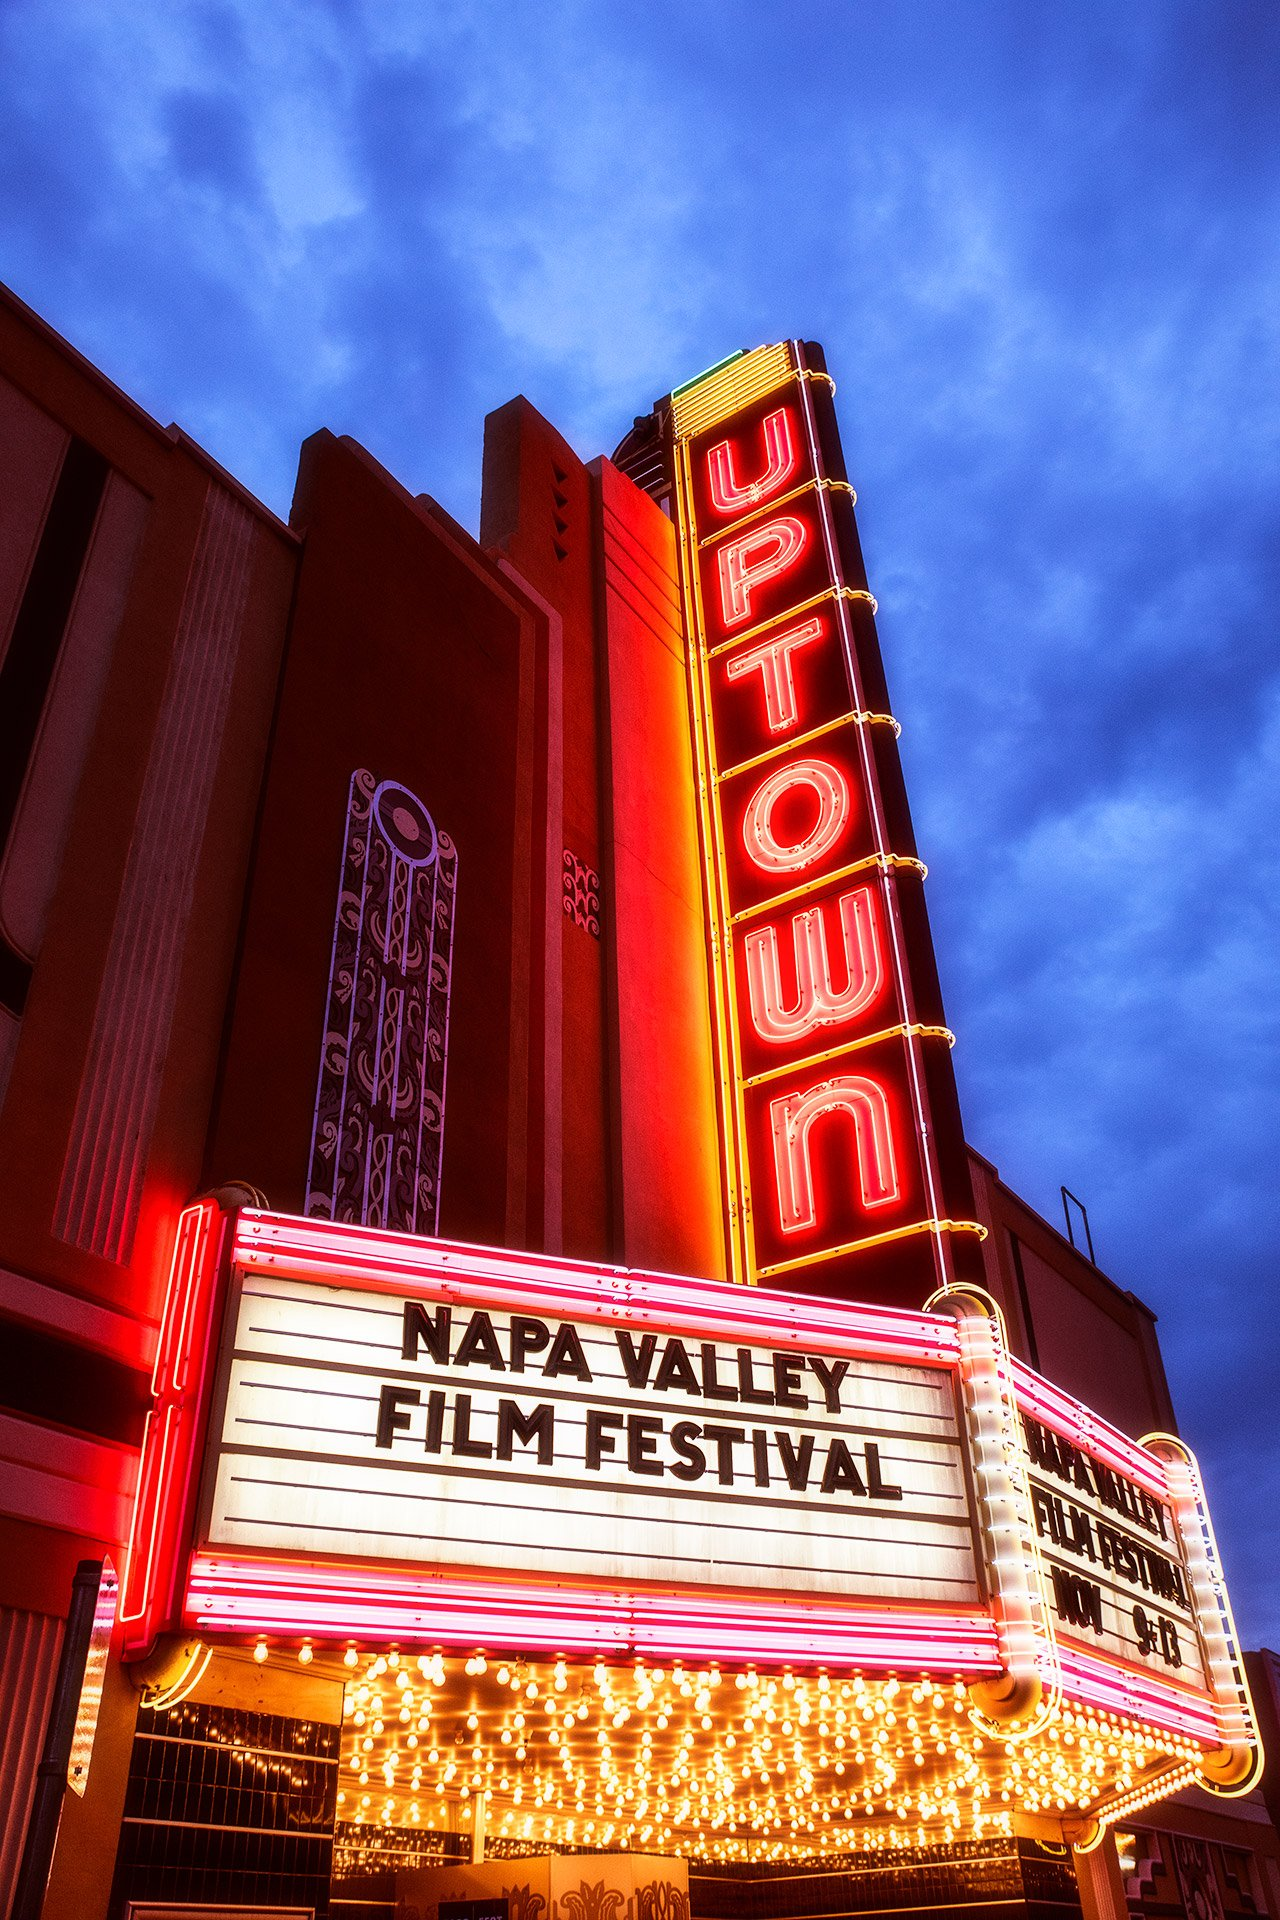 Napa Valley Film Festival with Charles Krug Winery | HonestlyYUM (honestlyyum.com)